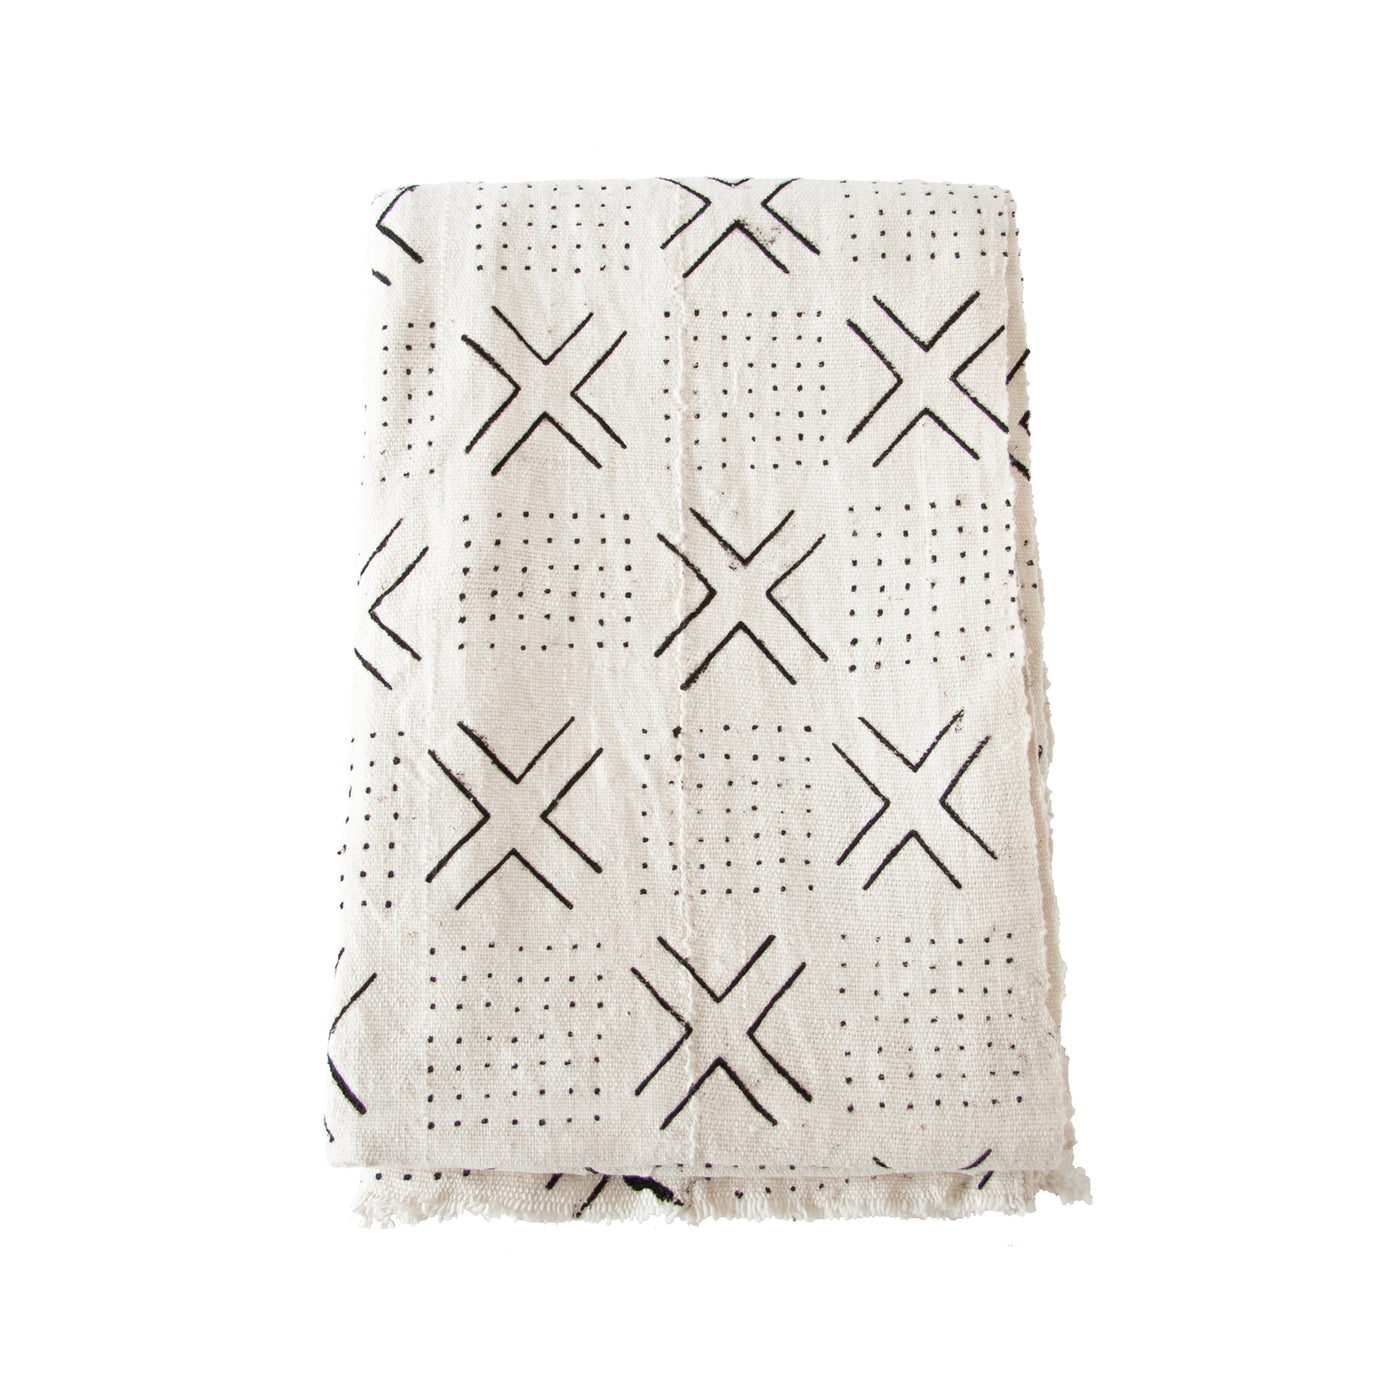 Mud Cloth Throw (cross) by Safari Fusion www.safarifusion.com.au